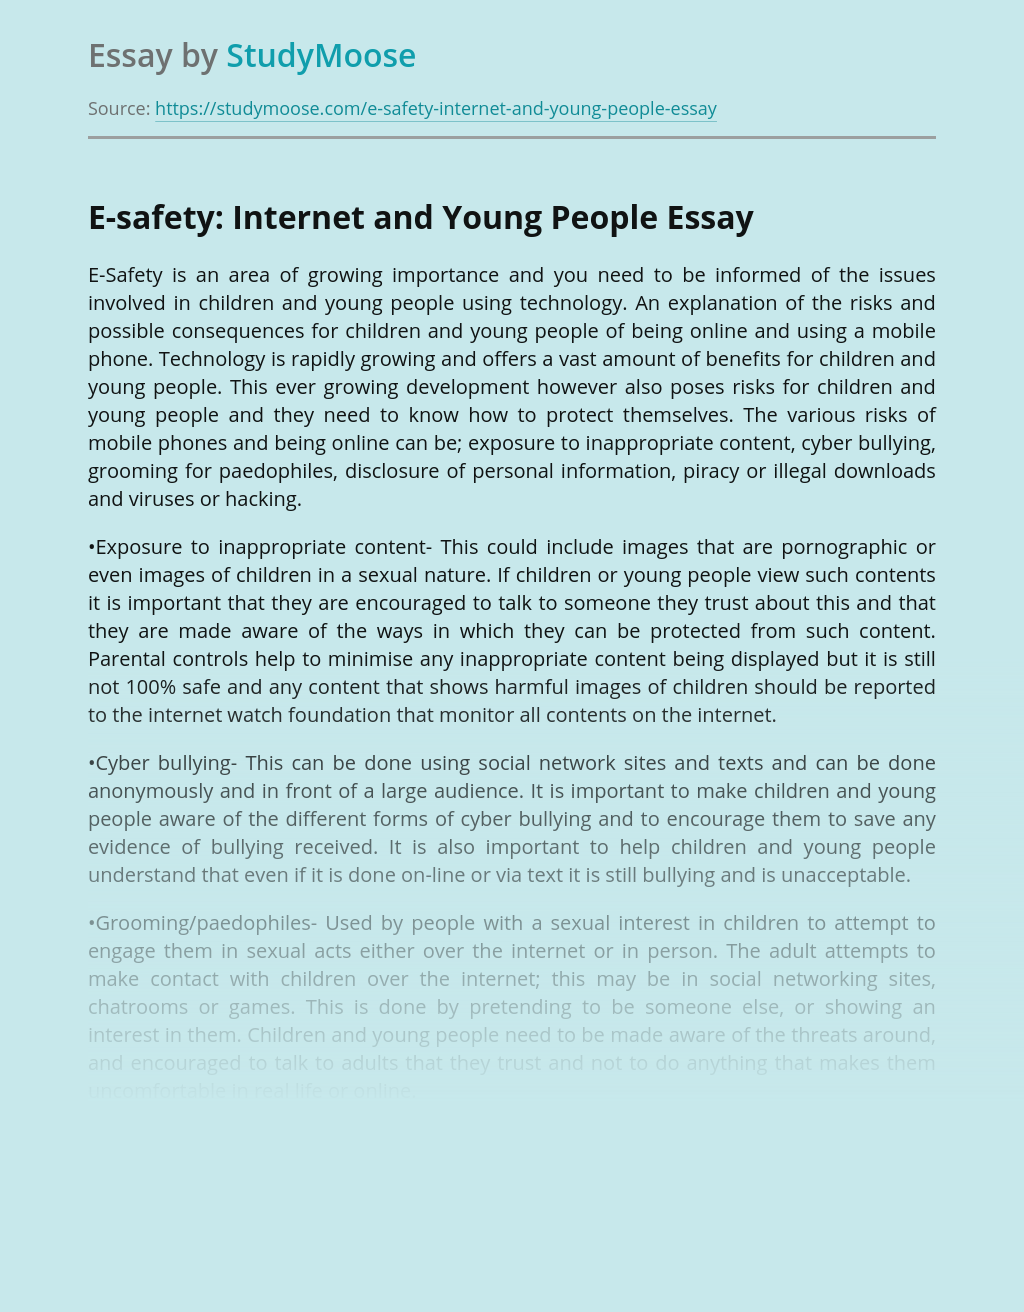 E-safety: Internet and Young People